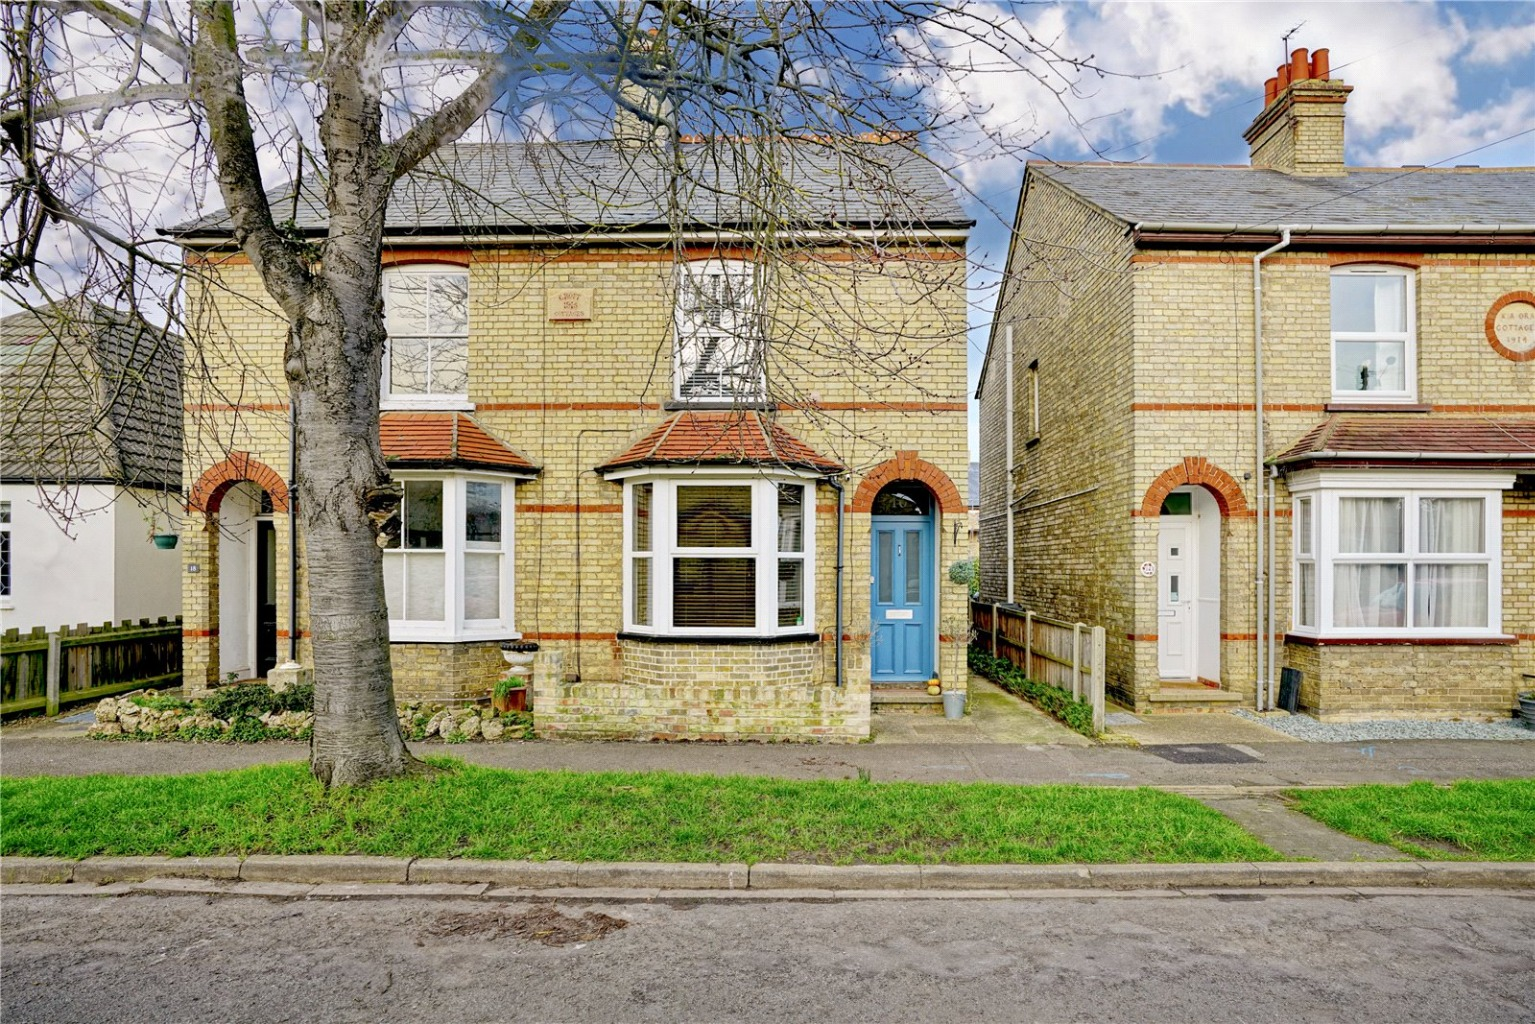 3 bed  for sale in Rycroft Avenue, St. Neots, PE19